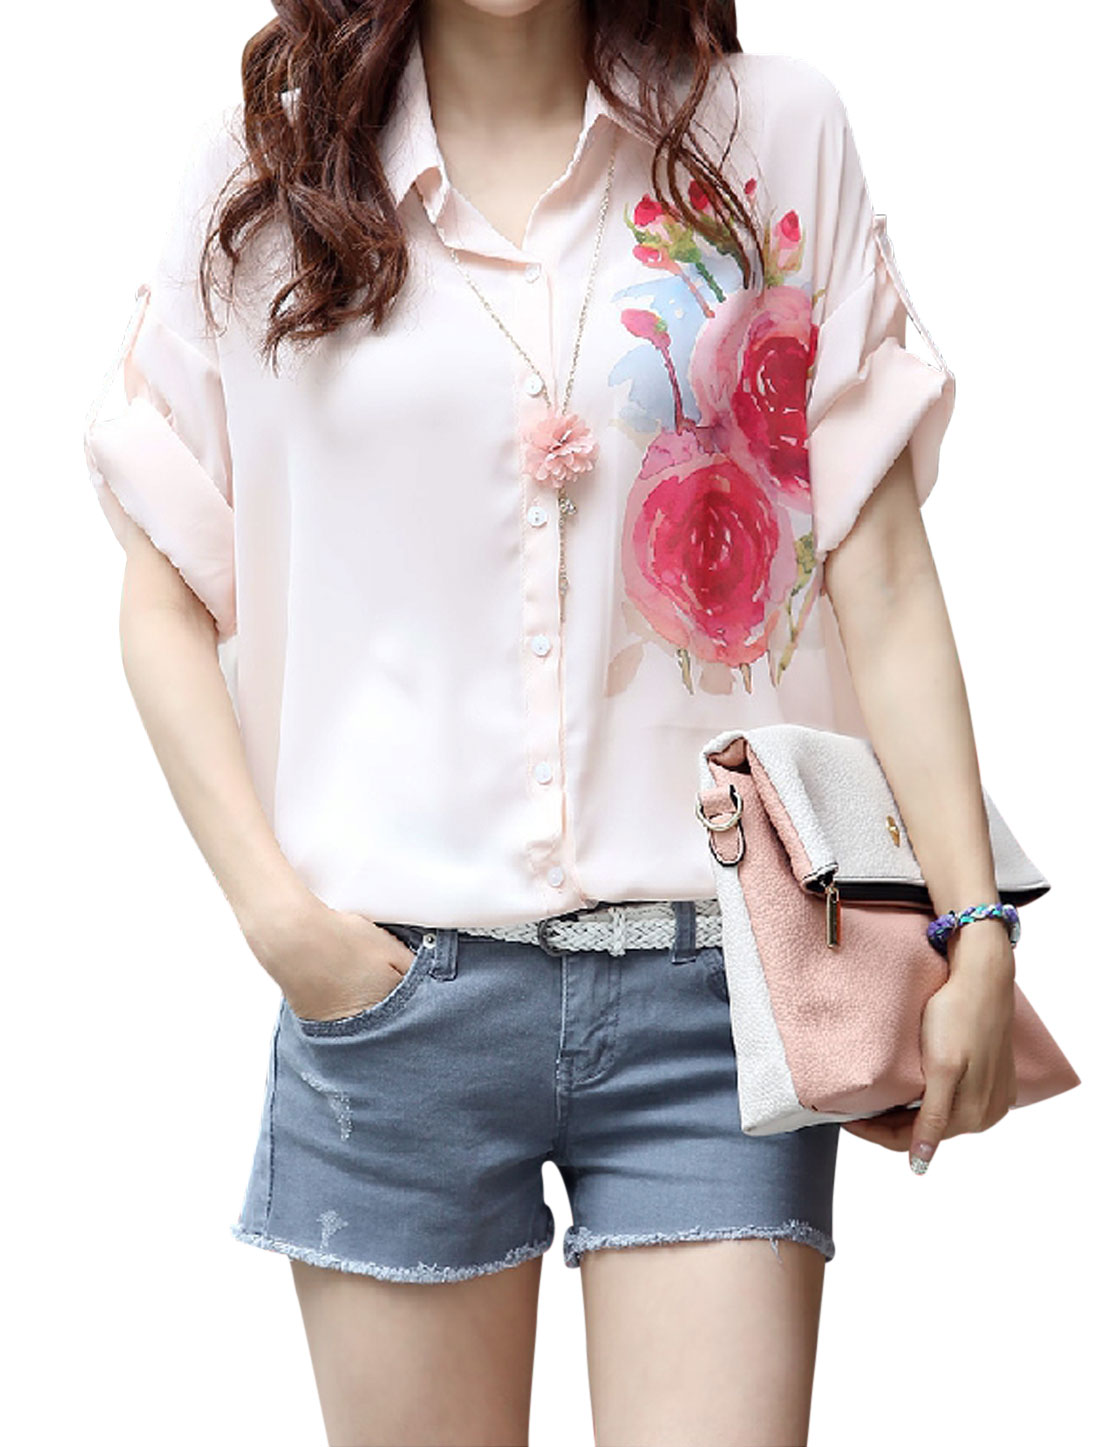 Lady Point Collar Single Breasted Floral Prints Chiffon Shirt Light Pink S